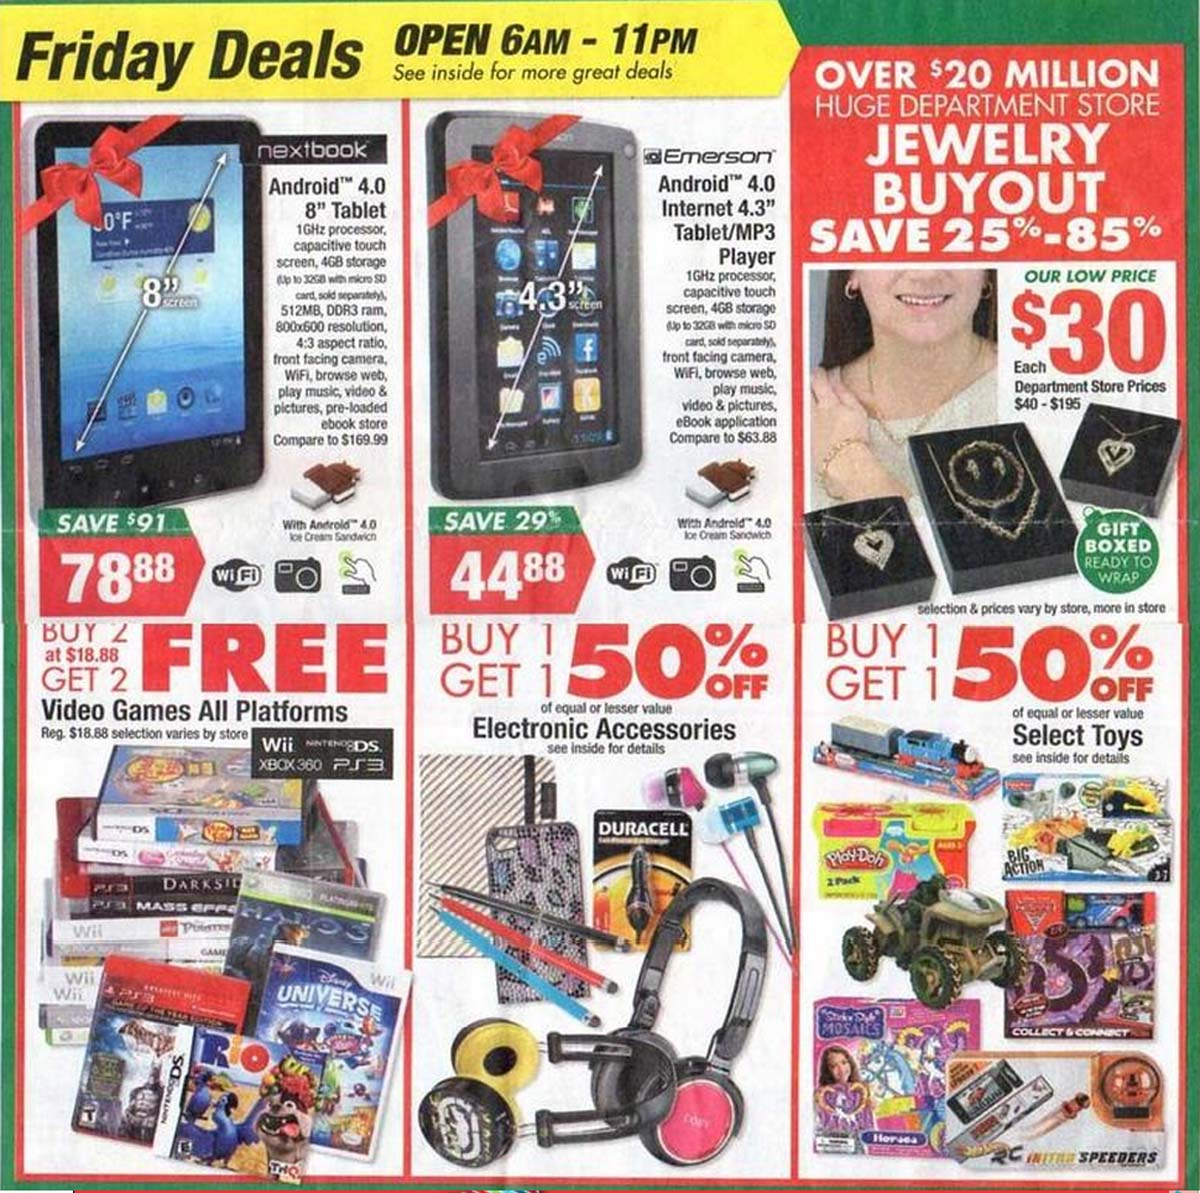 Big Lots Black Friday 2012 Ad Comes With Special Thursday